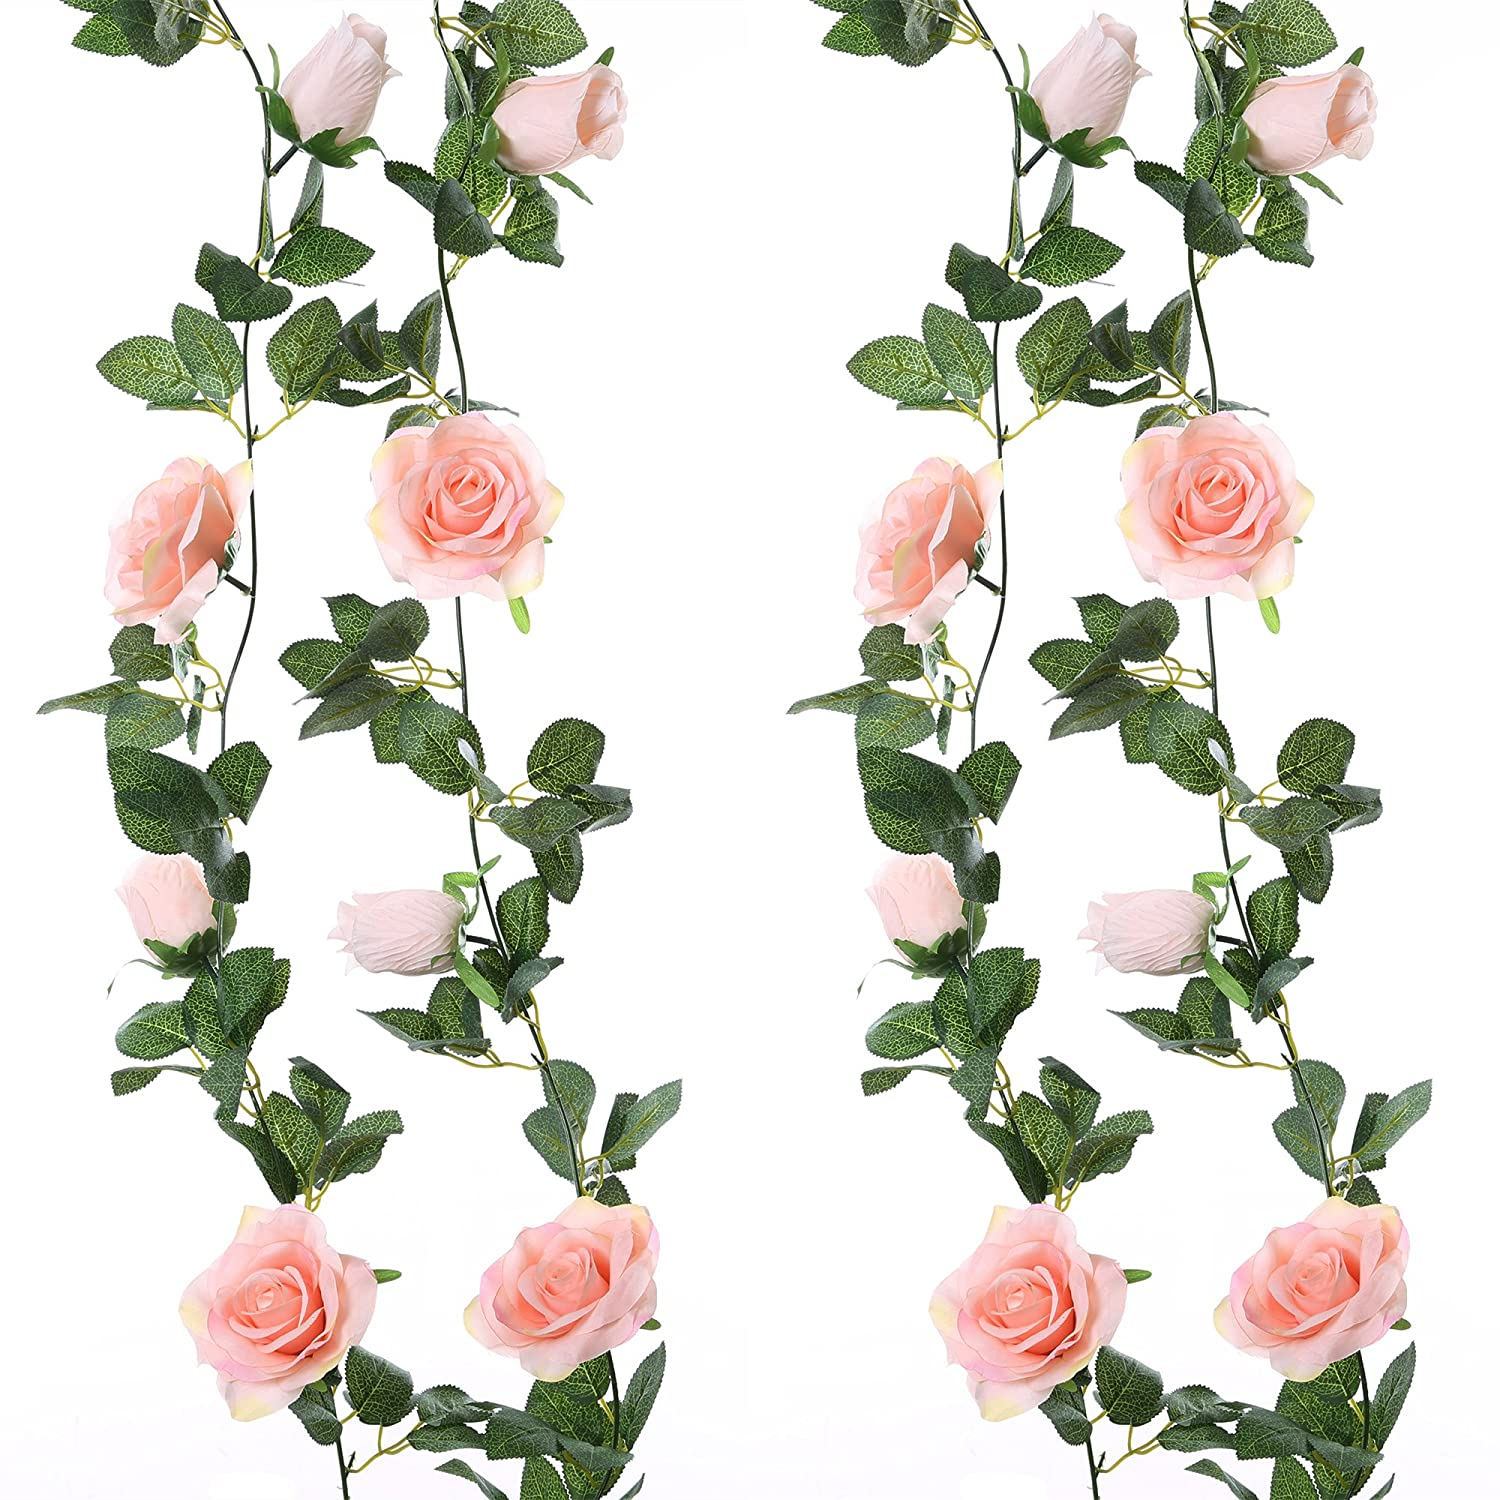 Felice Arts 2pcs 13 FT Fake Rose Vine Flowers Plants Artificial Flower Hanging Rose Ivy Home Hotel Office Wedding Party Garden Craft Art Decor,Pink